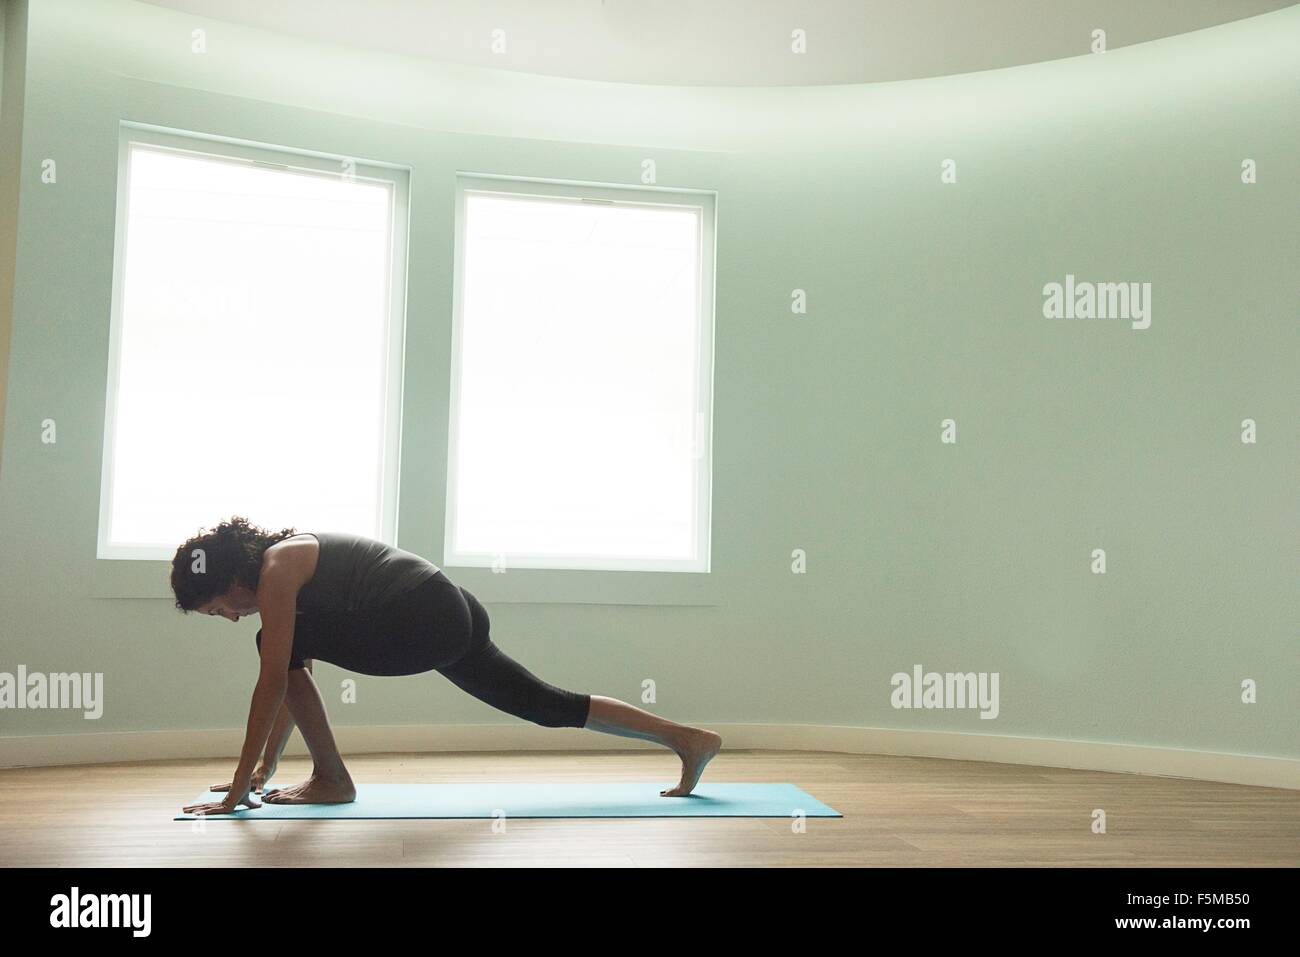 Mature woman practicing yoga in curved room - Stock Image